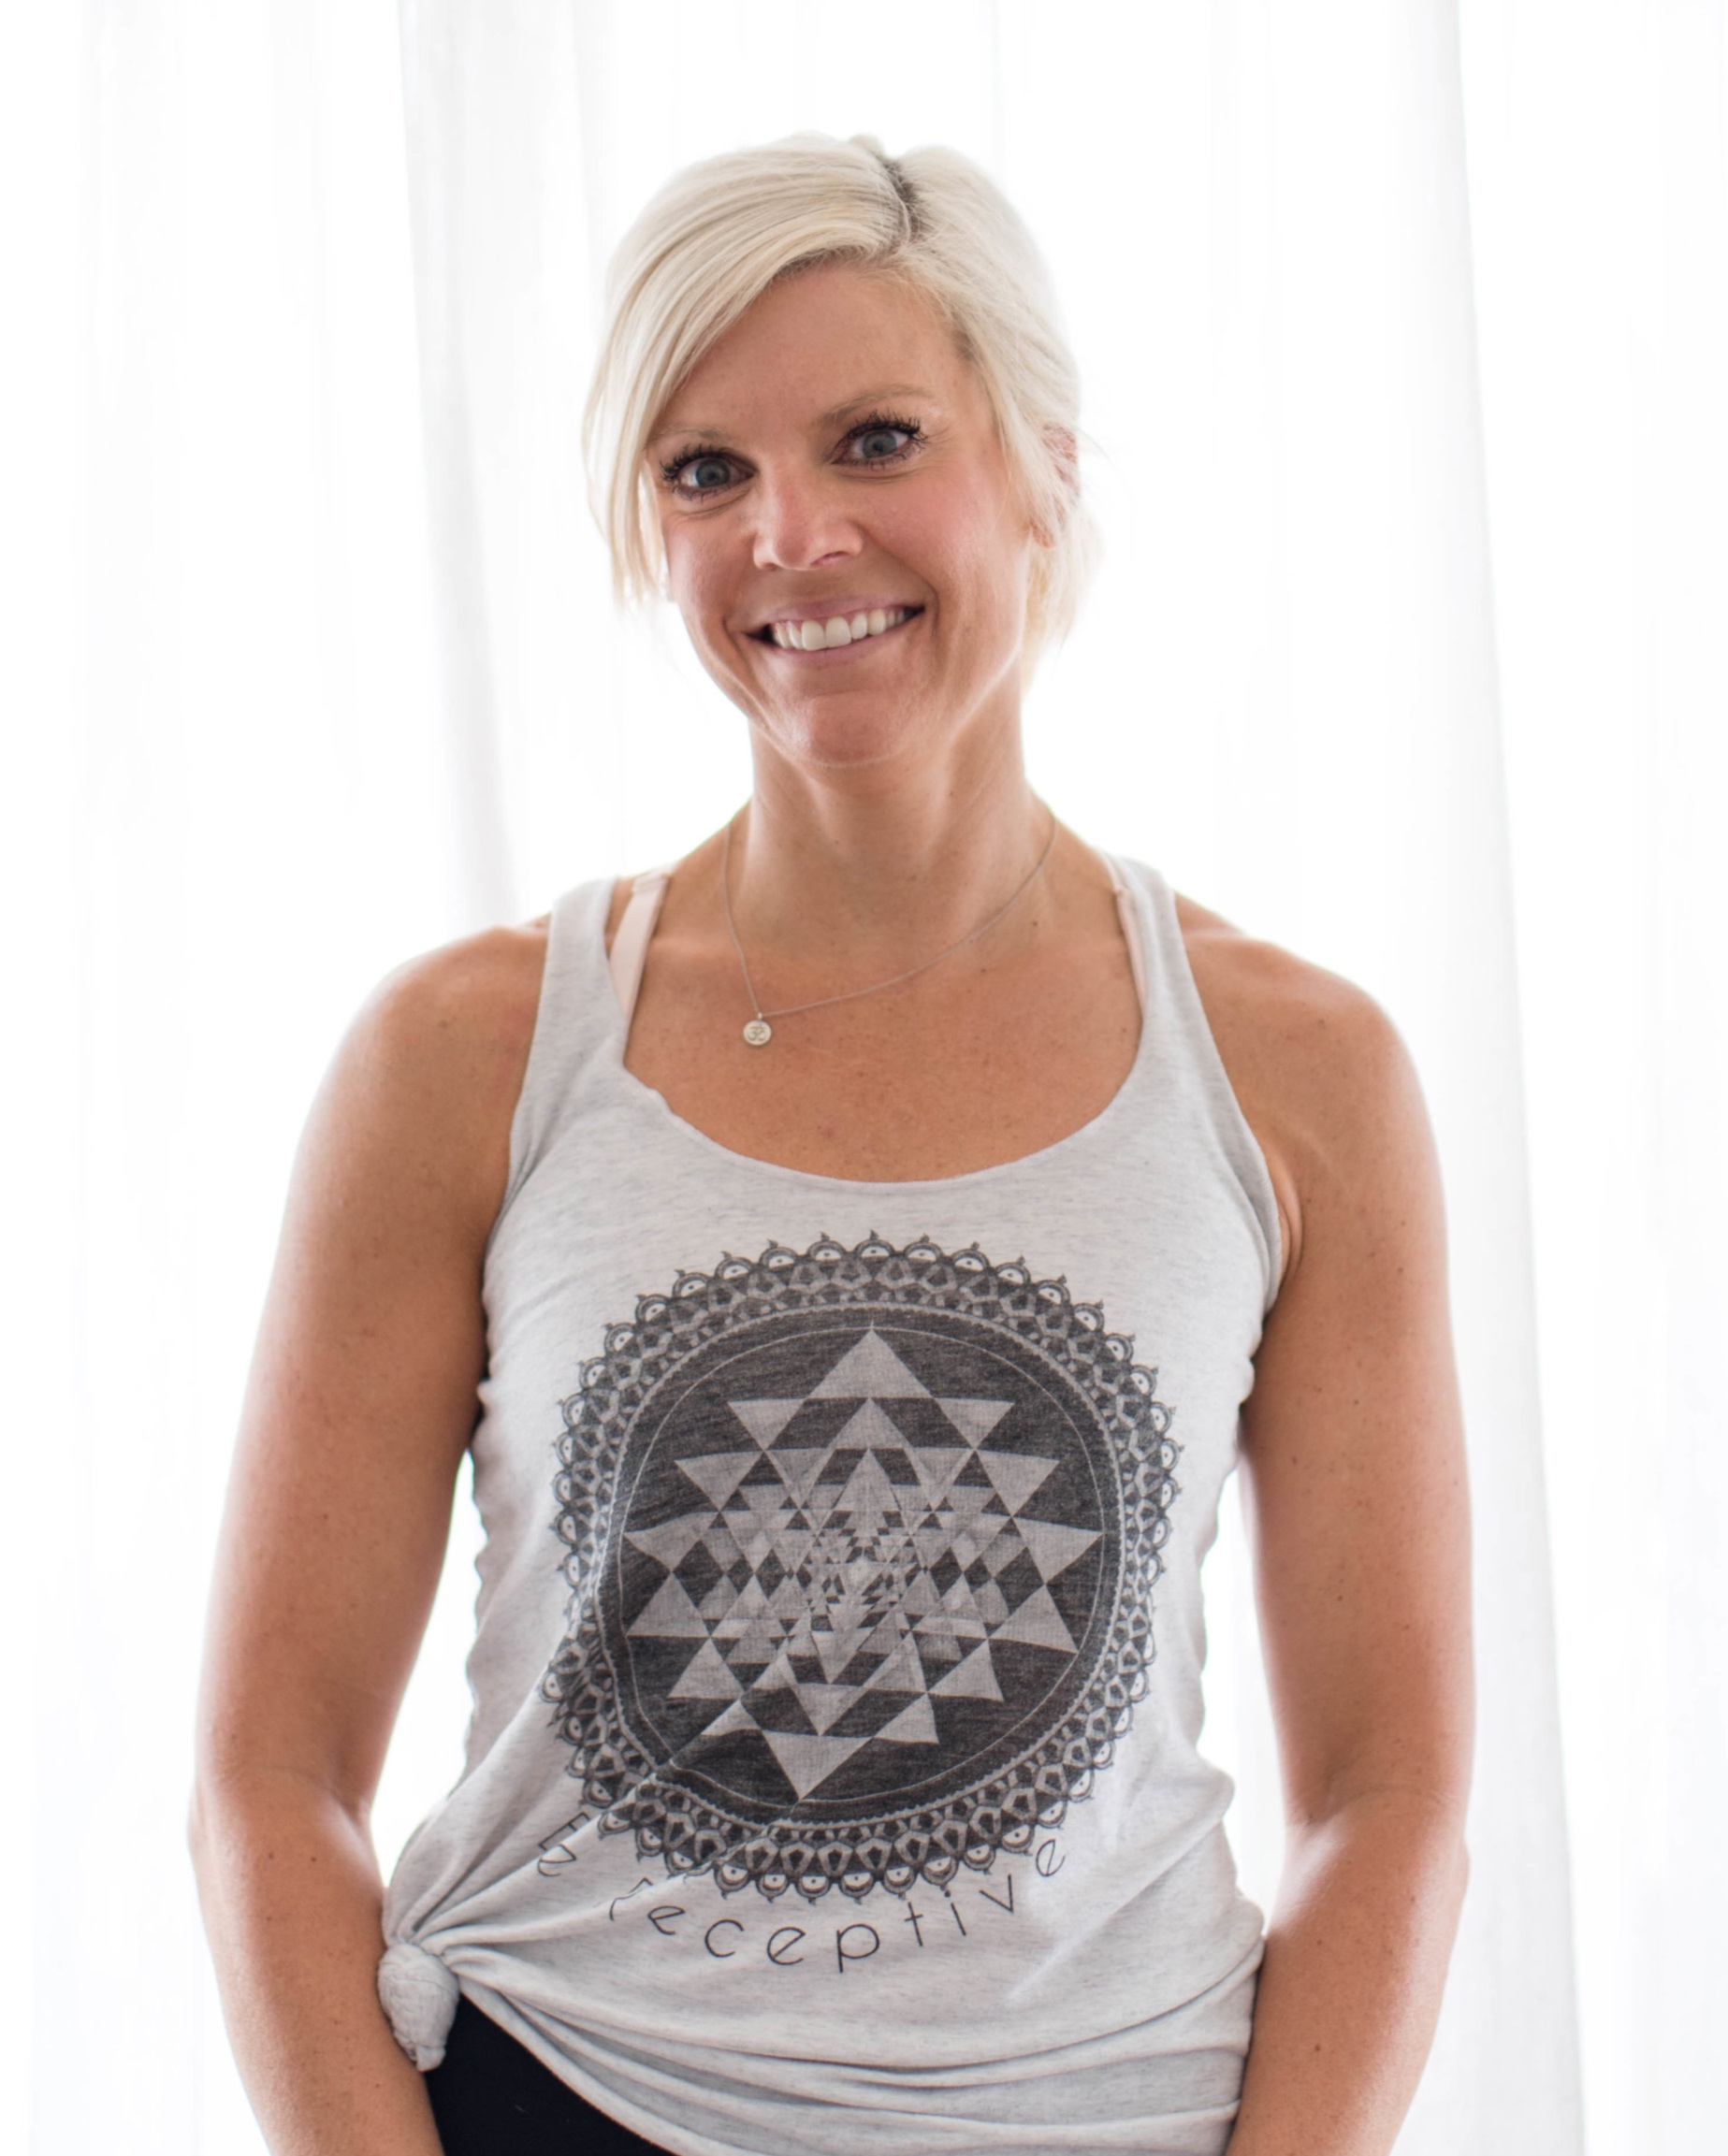 """Kelly Cerbone  Kelly has spent the last 14 years working part-time in the fitness industry. She loved the physical movement: challenge, perseverance, dedication; but needed something for her mind. She completed her 200 RYT this past July. Little did she know how much this experience would transform how she sees and perceives the world. As a veteran 7th grade school teacher, Kelly recognized how asana, mindfulness and community would greatly benefit her students. She most recently took a course on Yoga Calm for kids and began infusing these practices into her classroom. Kelly enjoys inspiring and empowering today's youth, as well as adults, through the practice of yoga, mindfulness and reflection.  """"Yoga does not transform the way we see things. It transforms the person who sees.""""  -B.K. Iyengar"""